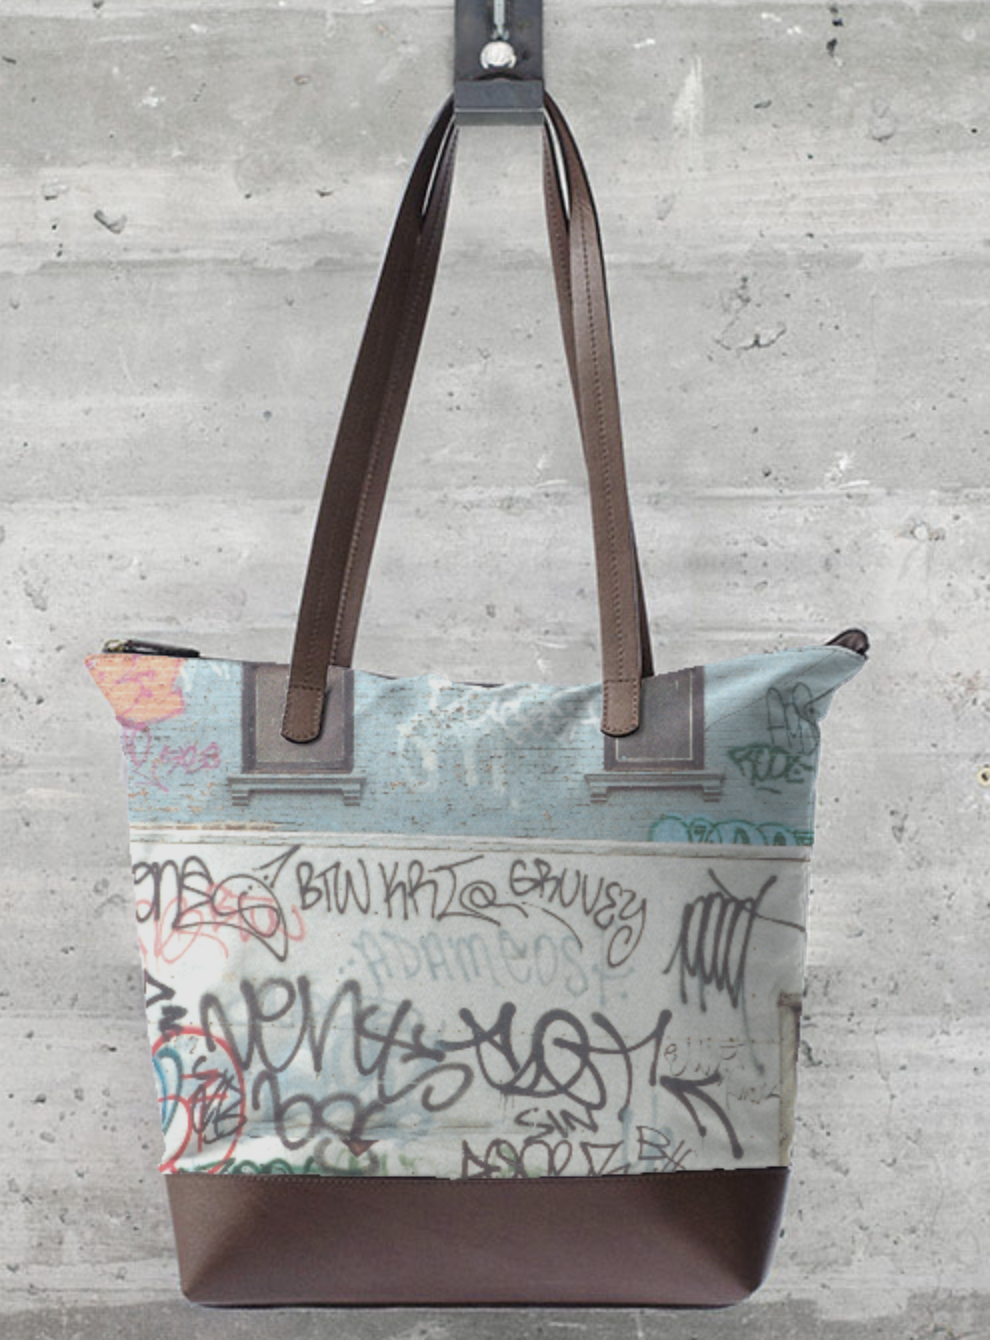 bag-WilliamHeydt-VidaCollection2018-2.png